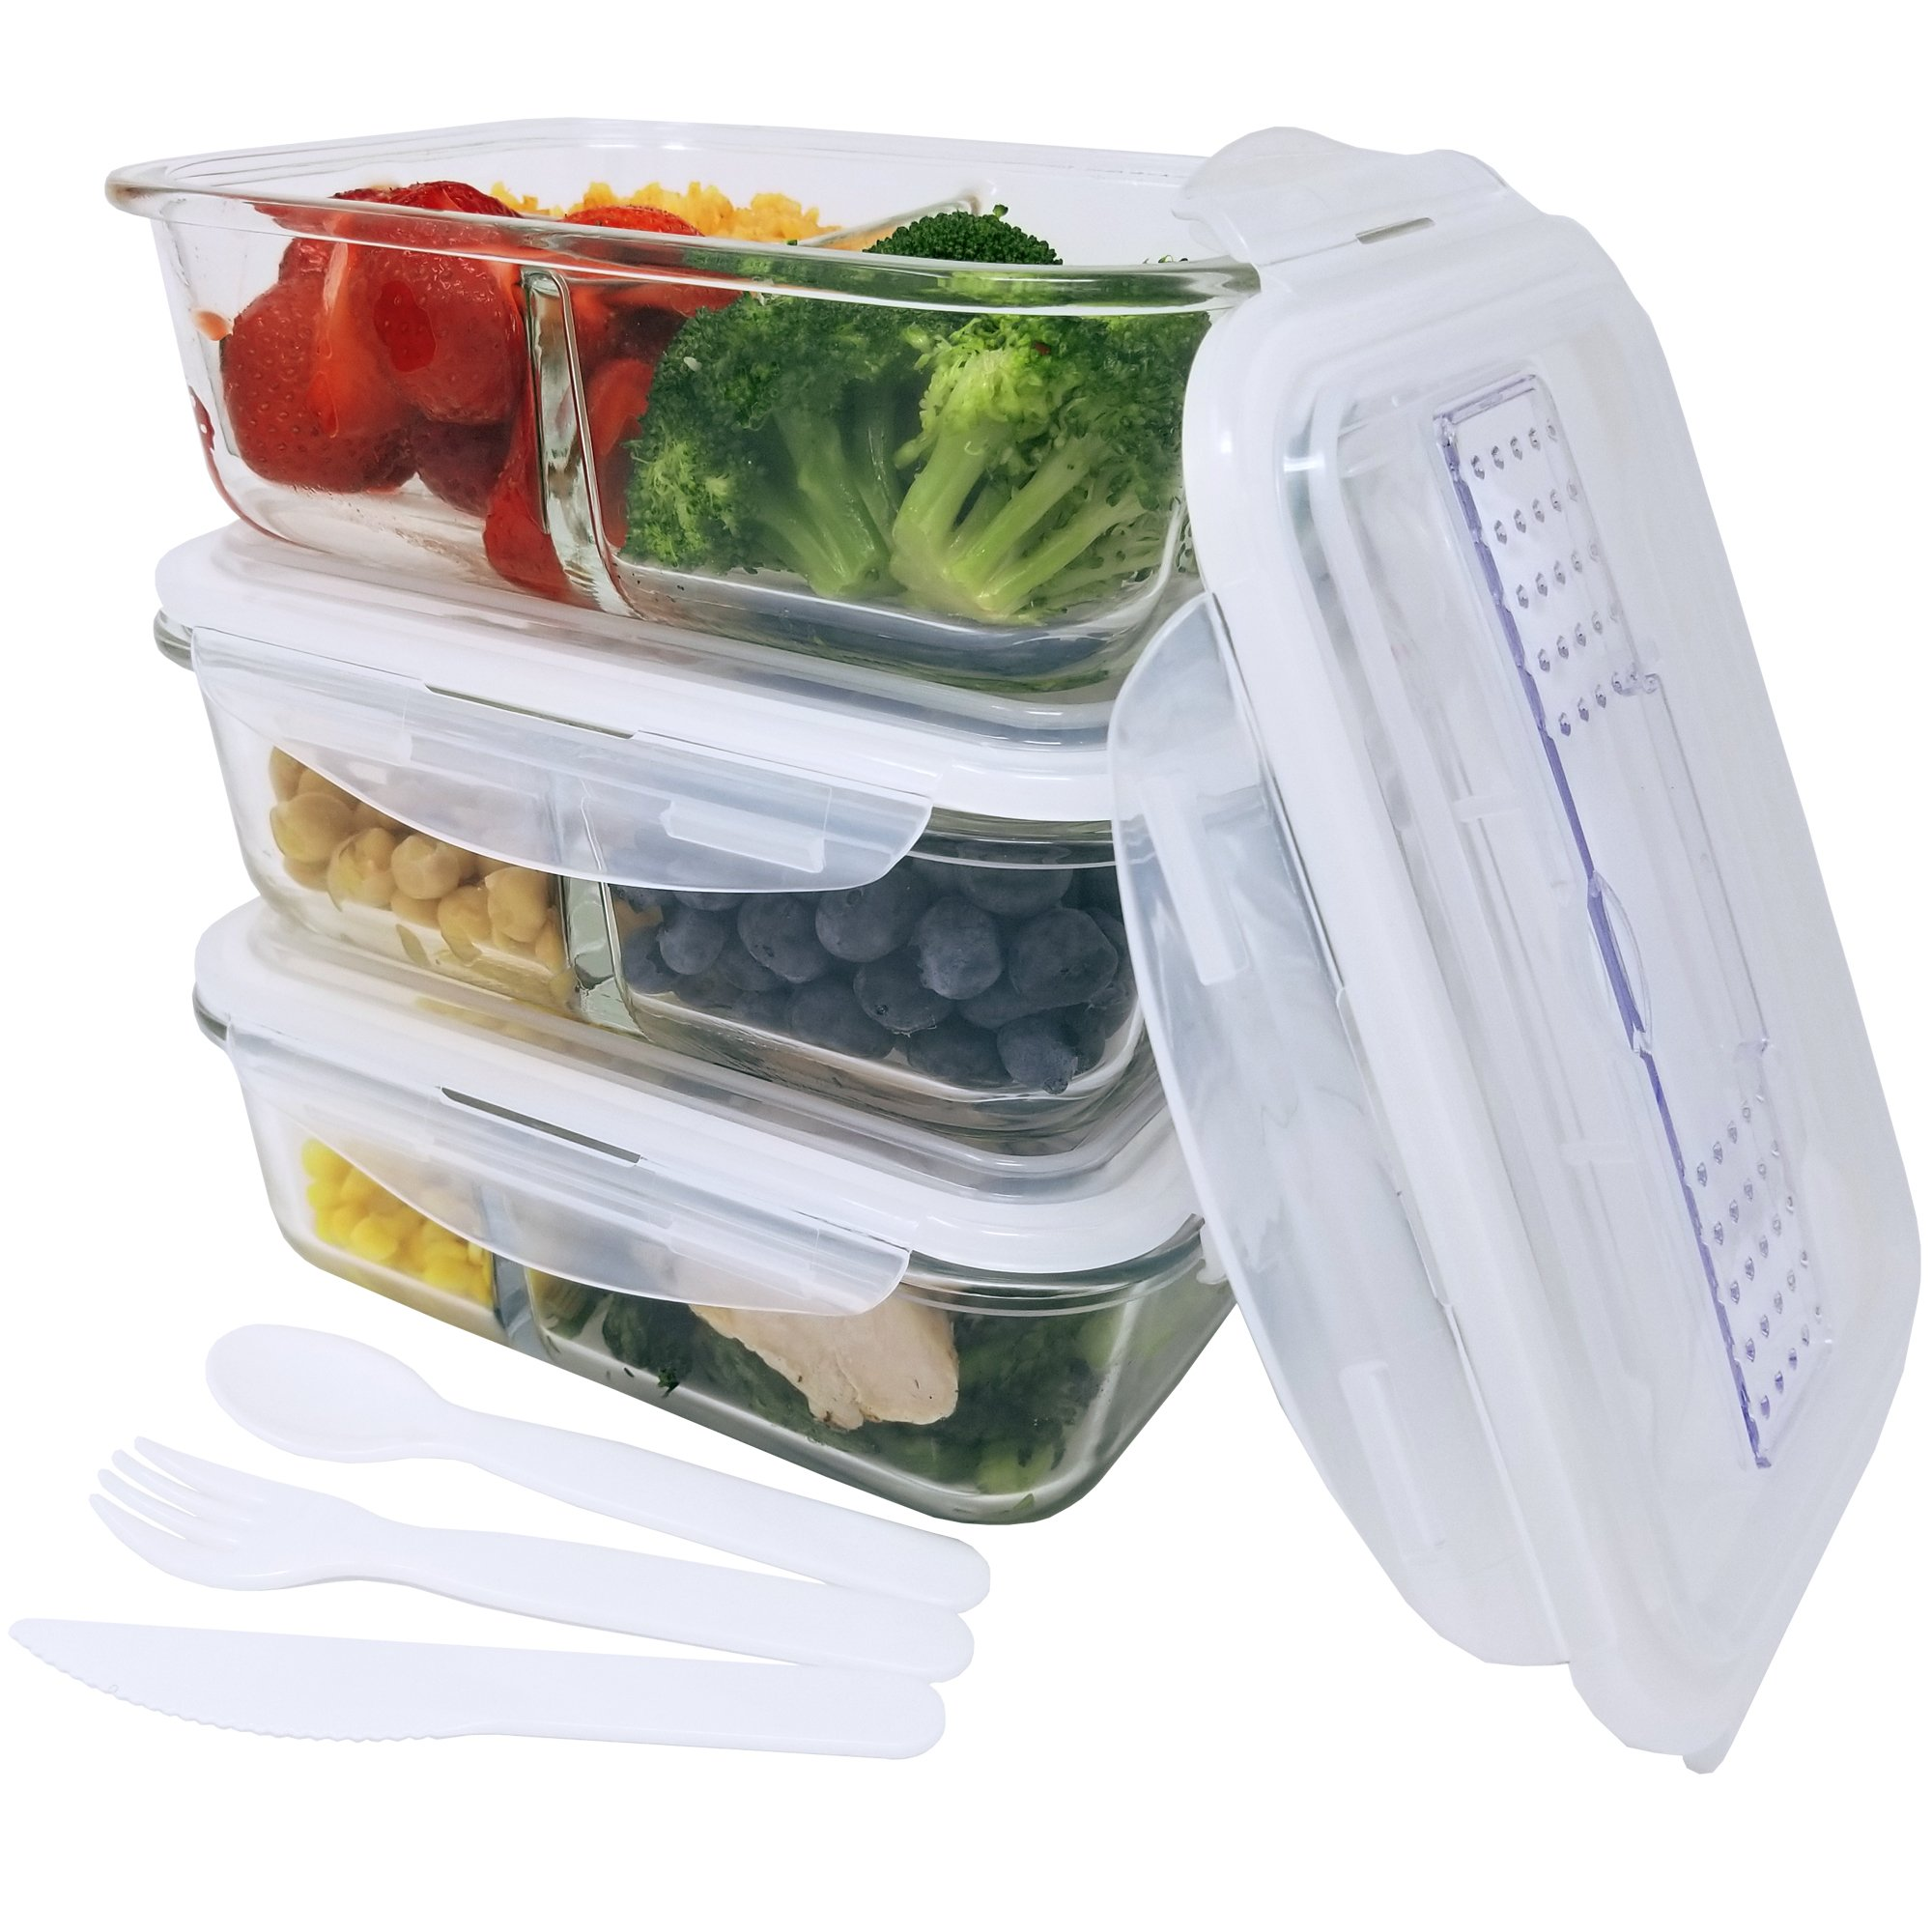 KitchenBasix 2 & 3 Compartments Glass Food Storage Container Set with Airtight Locking Lids, Cutlery Compartment & Portion Control - Microwave, Freezer, Oven & Dishwasher Safe [3-Pack, 32oz]